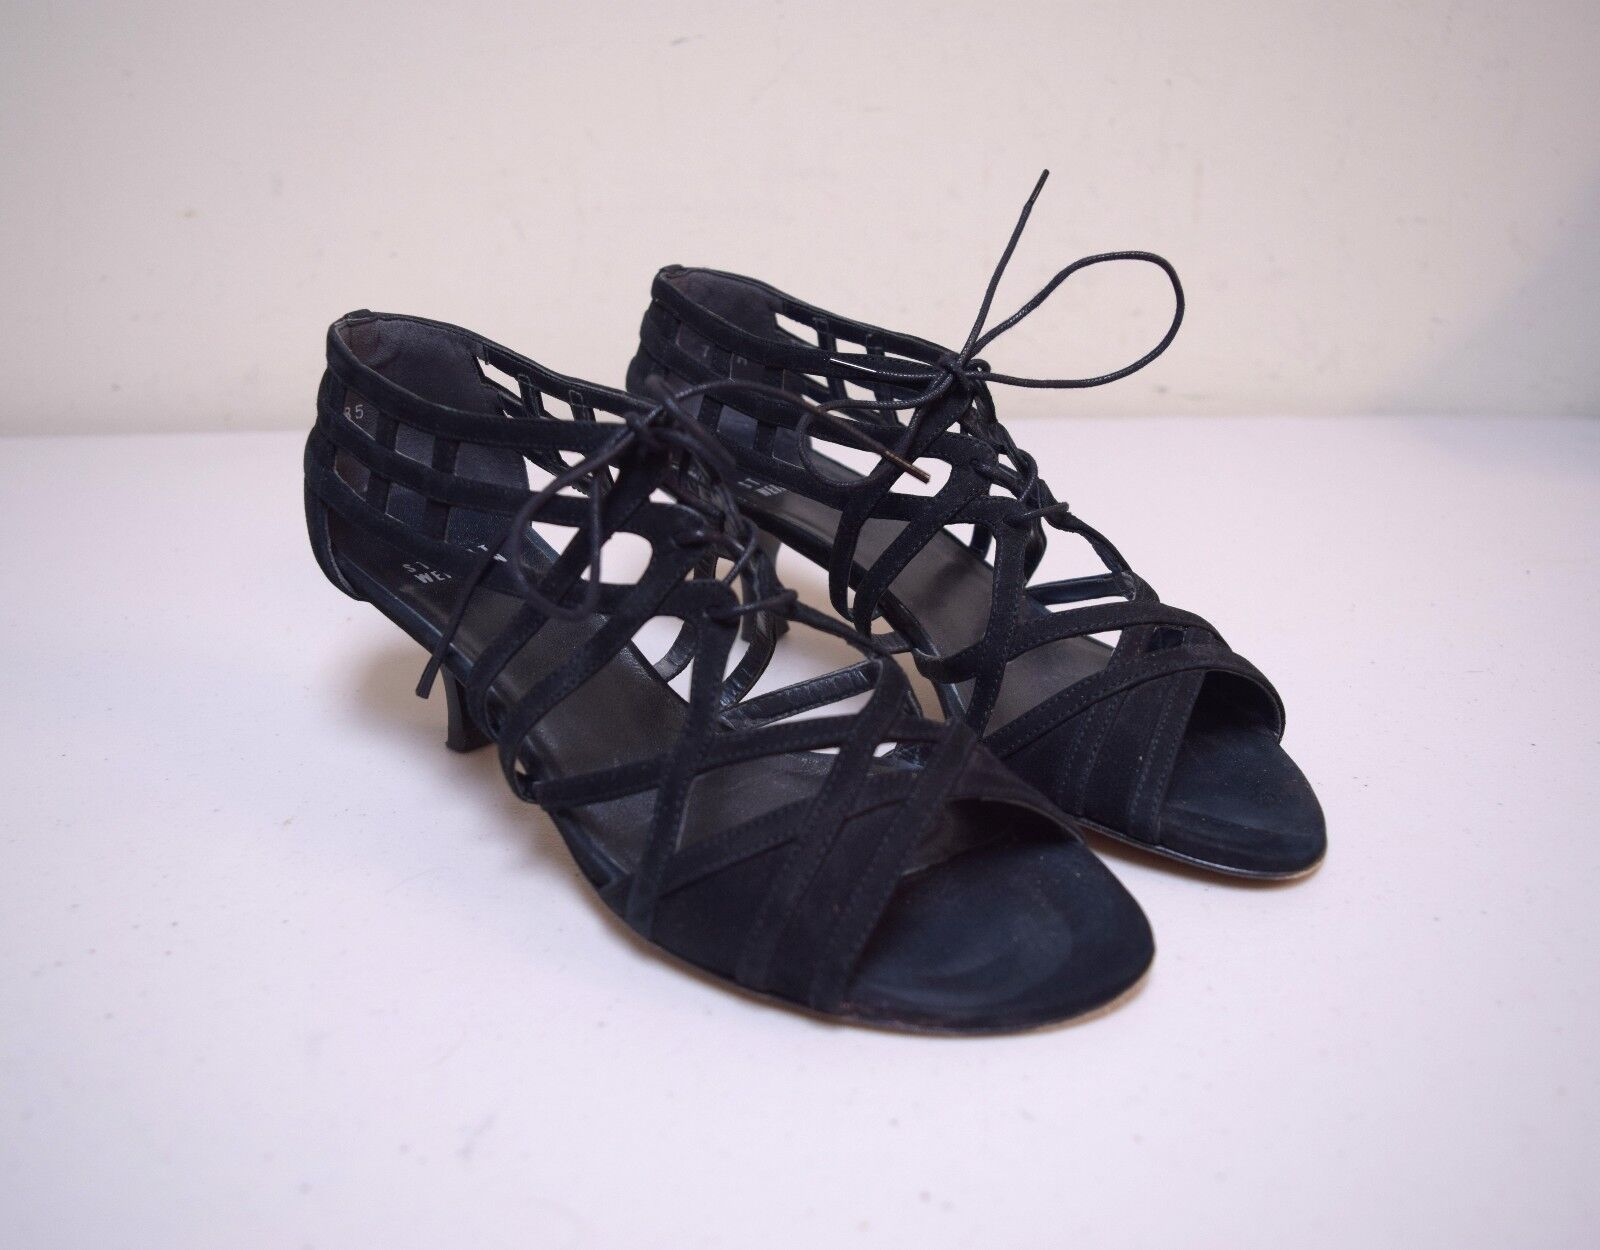 STUART WEITZMAN nero Nubuck Suede Cage Pumps Sandals Made in Spain Dimensione 7 M